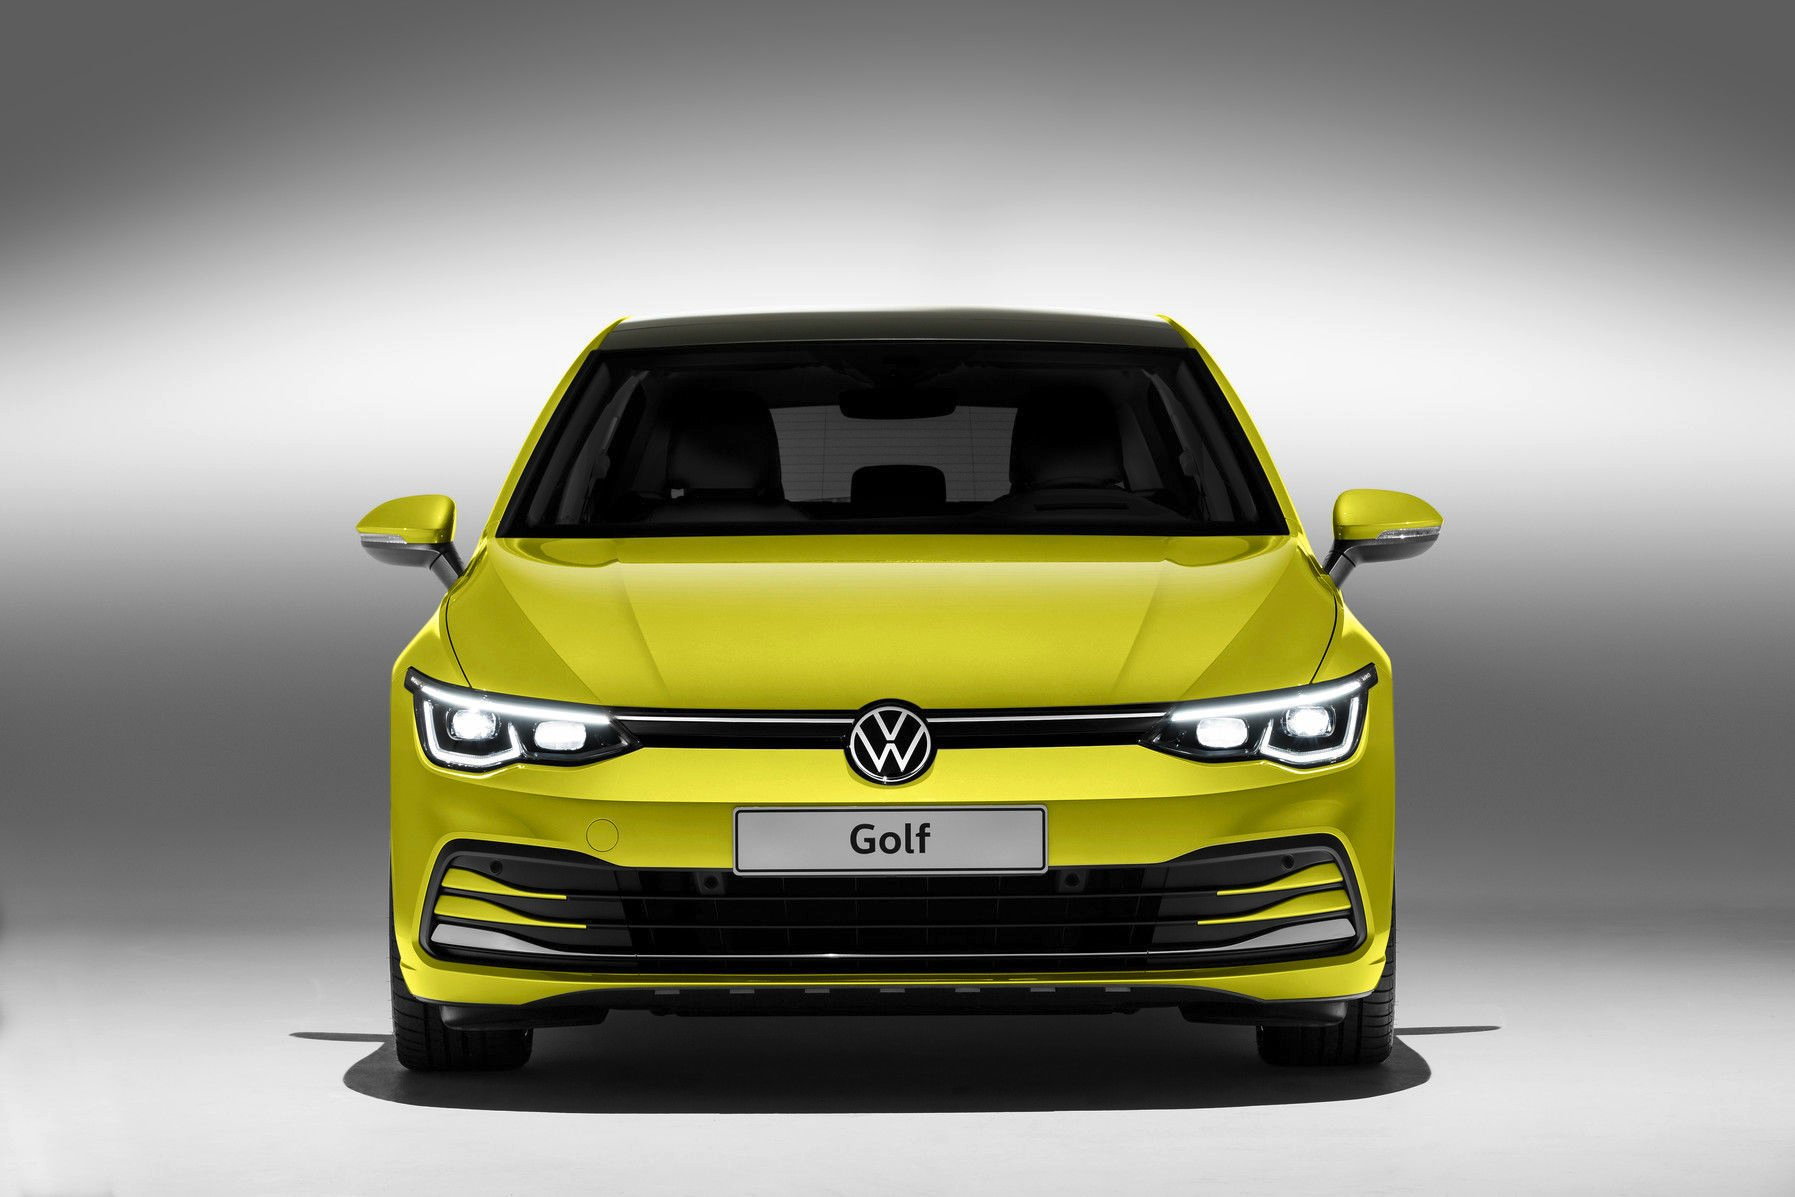 Volkswagen Golf (2020)